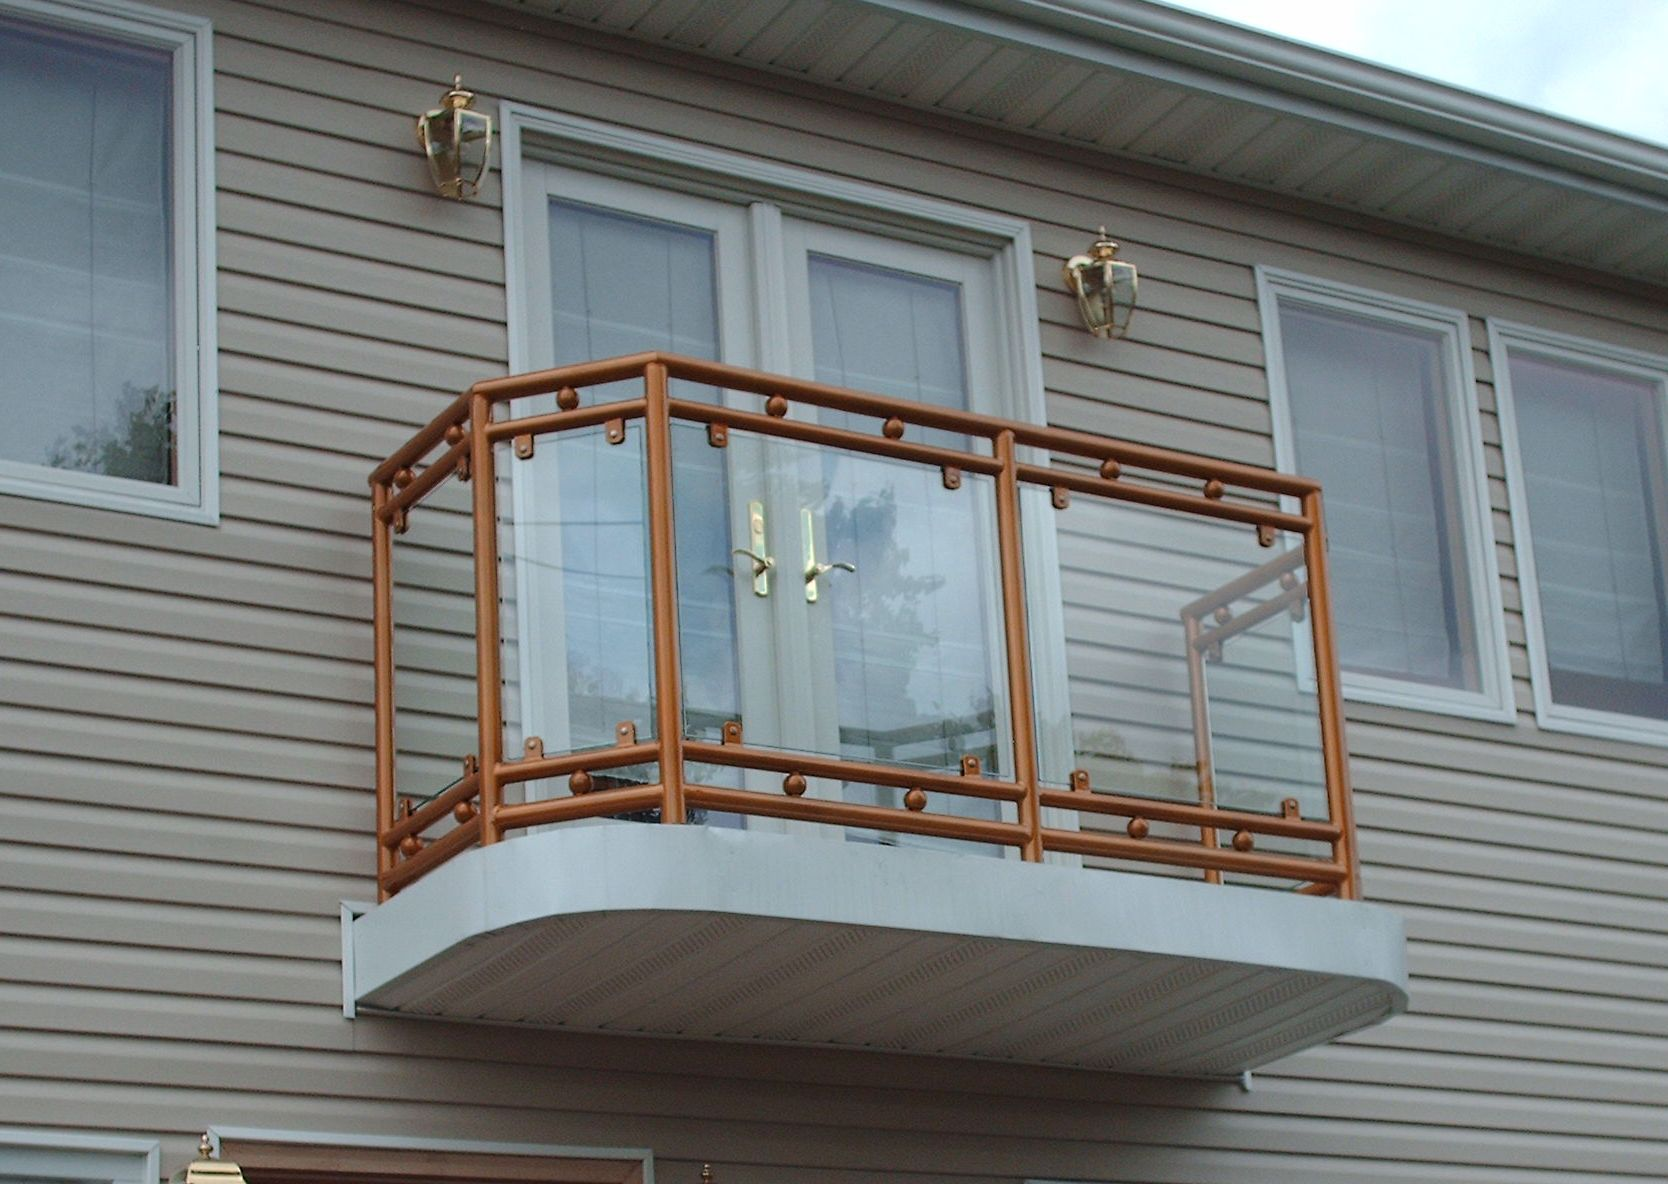 Guardian gate balcony balconies pinterest balcony for Balcony terrace